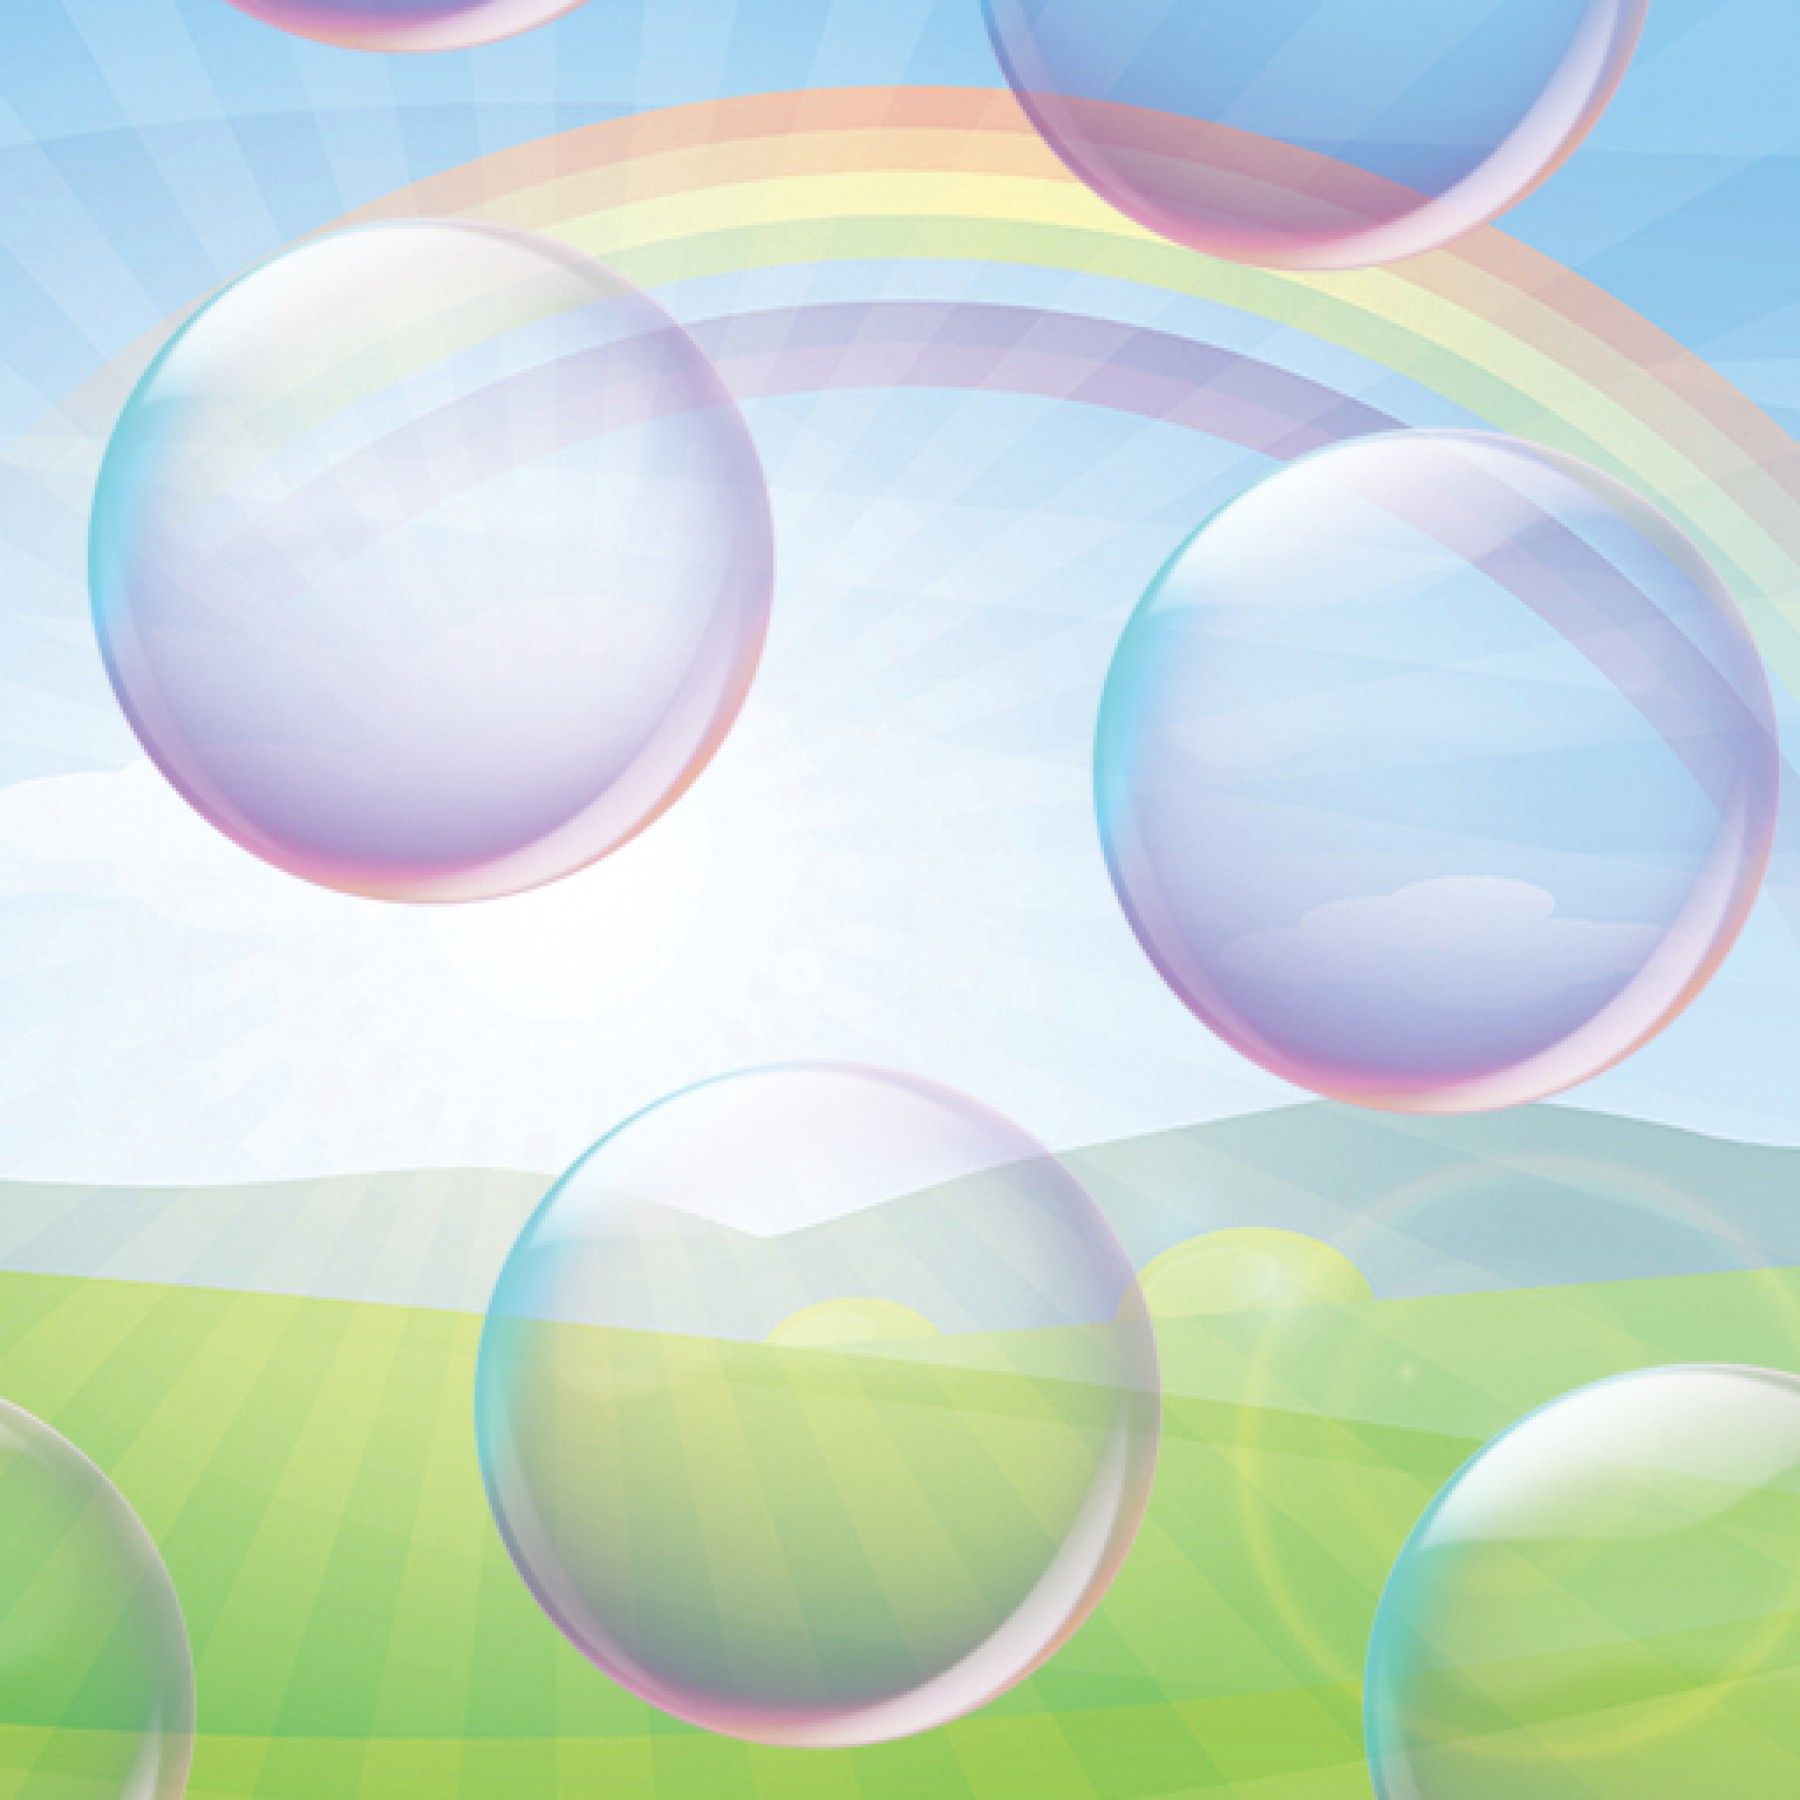 floating-bubbles-playtime-active-kids-adults-sensory-main-location1